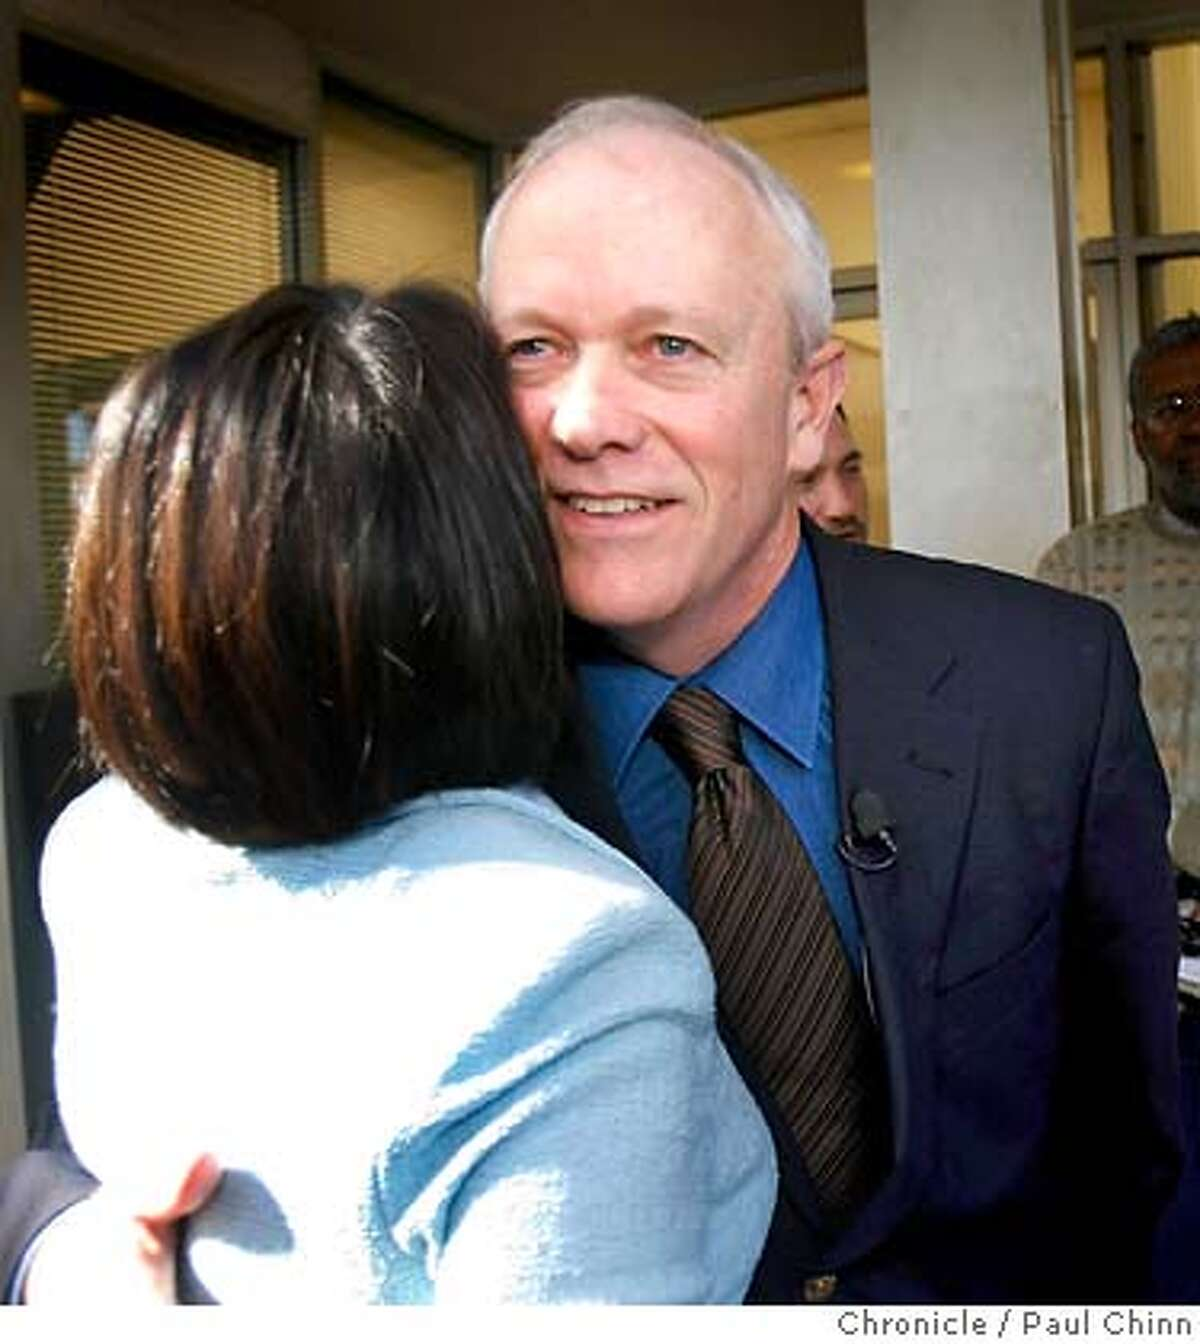 A supporter hugs Jerry McNerney at a Democratic Party victory rally in Oakland, Calif. on Wednesday, Nov. 8, 2006. McNerney defeated incumbent Rebublican Richard Pombo in the 11th district Congressional race. PAUL CHINN/The Chronicle **Jerry McNerney, Richard Pombo